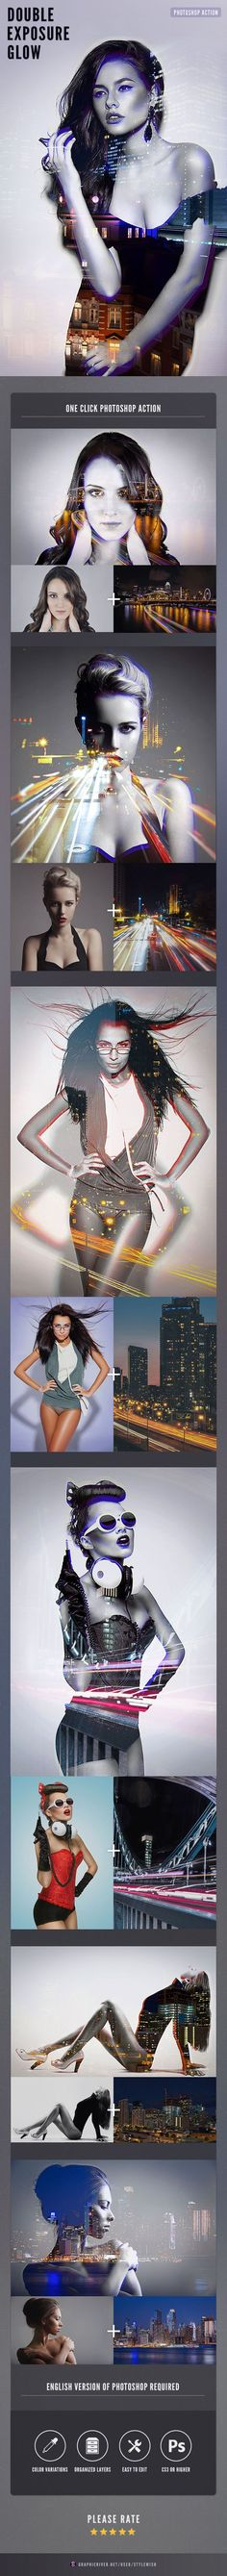 Double Exposure Glow Photoshop Action - Photo Effects Actions